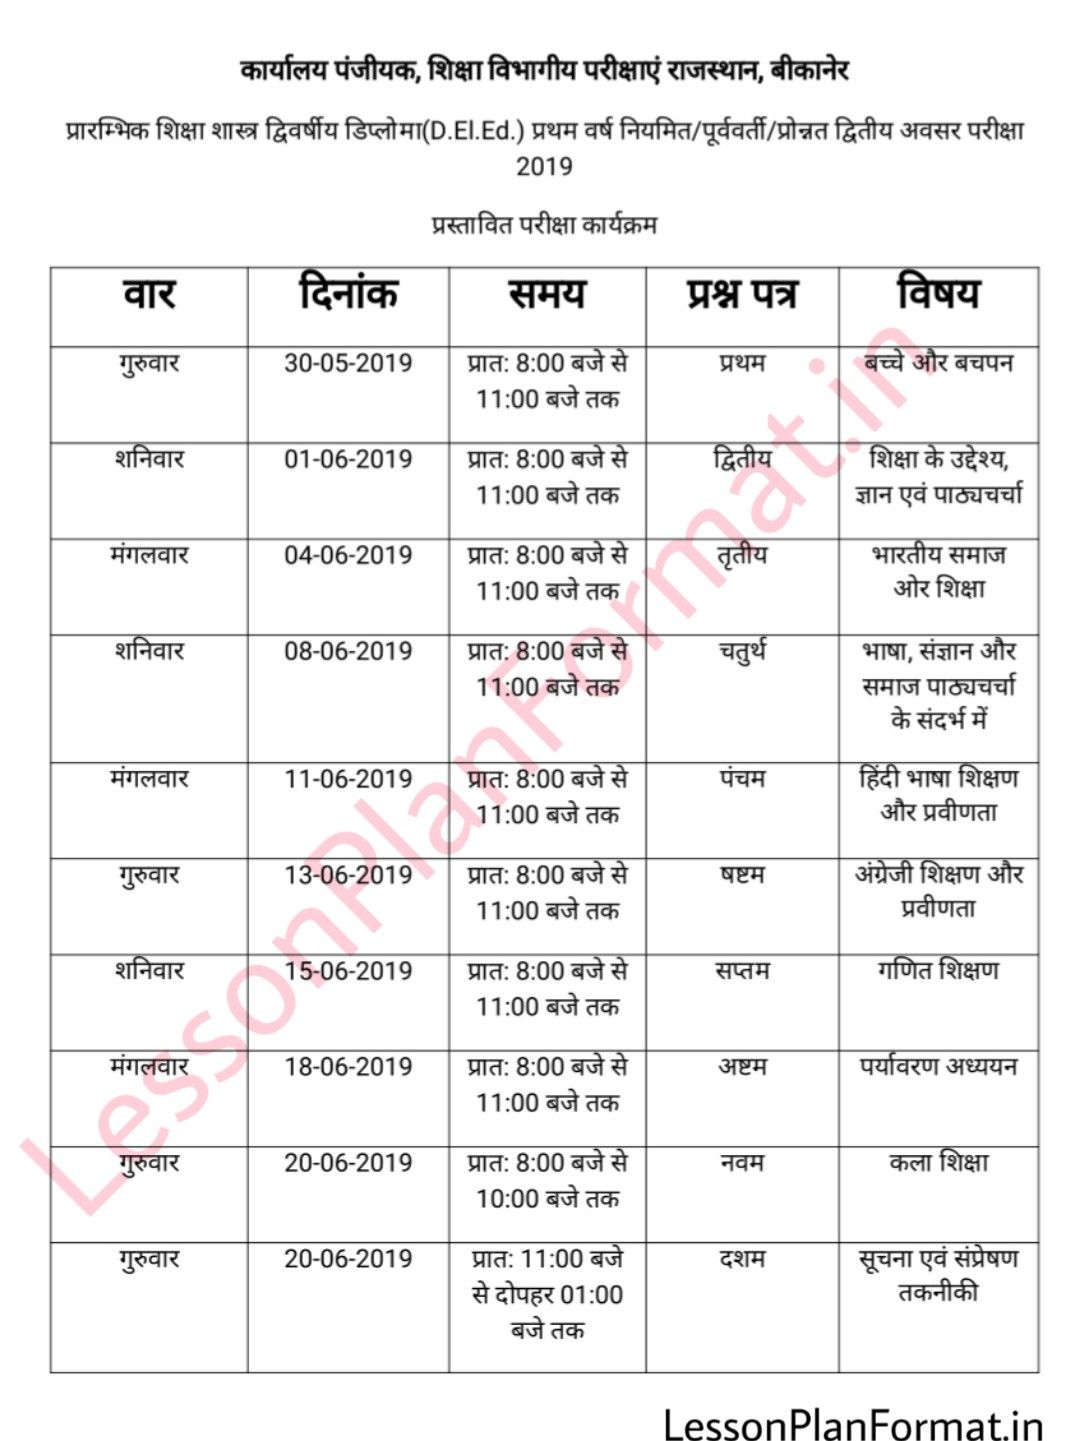 D El Ed First Year Time Table 2019